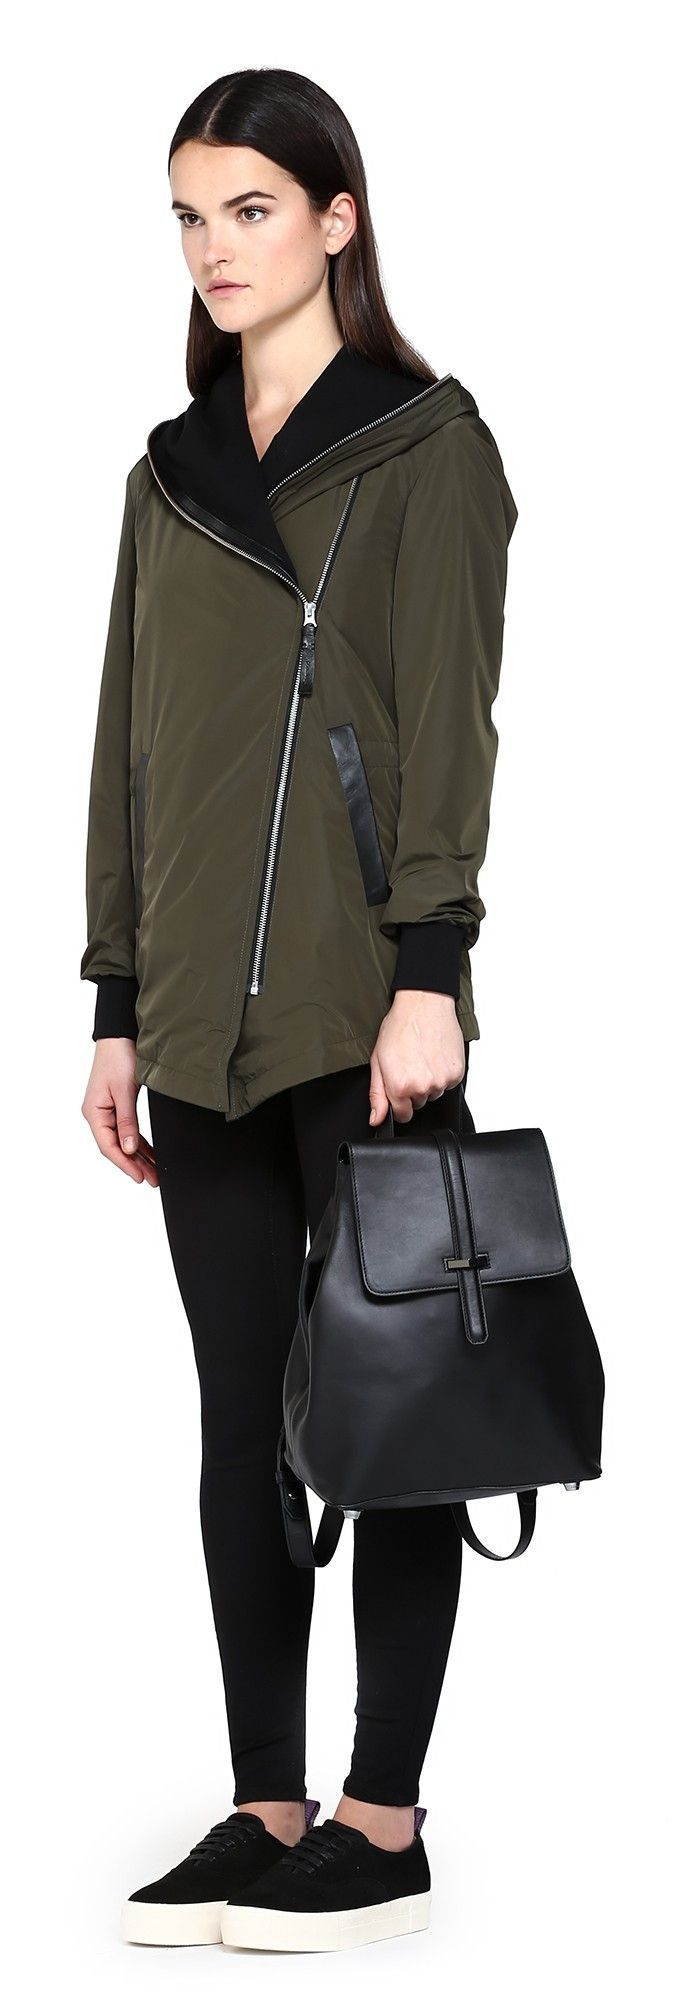 NIKA ARMY RAINCOAT WITH WATERFALL HOOD | FOR WOMEN | Mackage #RaincoatsForWomenHoods #RaincoatsForWomens